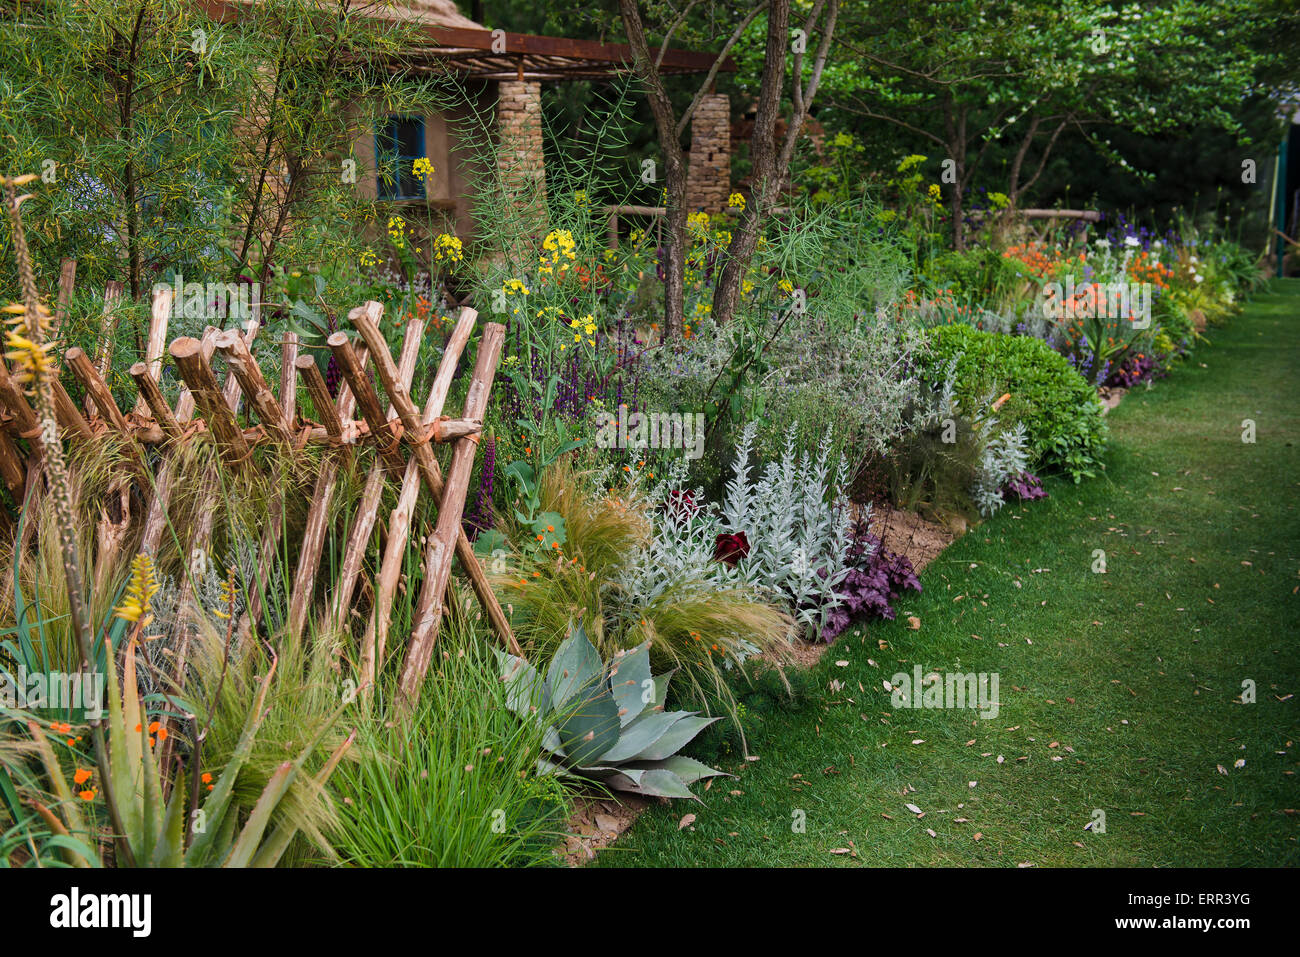 peoples choice best show garden stock photos & peoples choice best